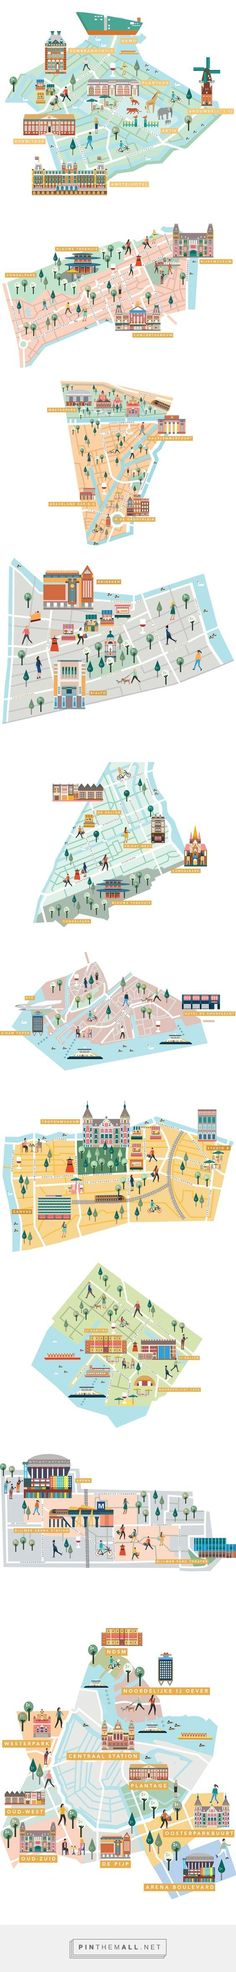 IAMSTERDAM Neighborhoods guide maps on Behance